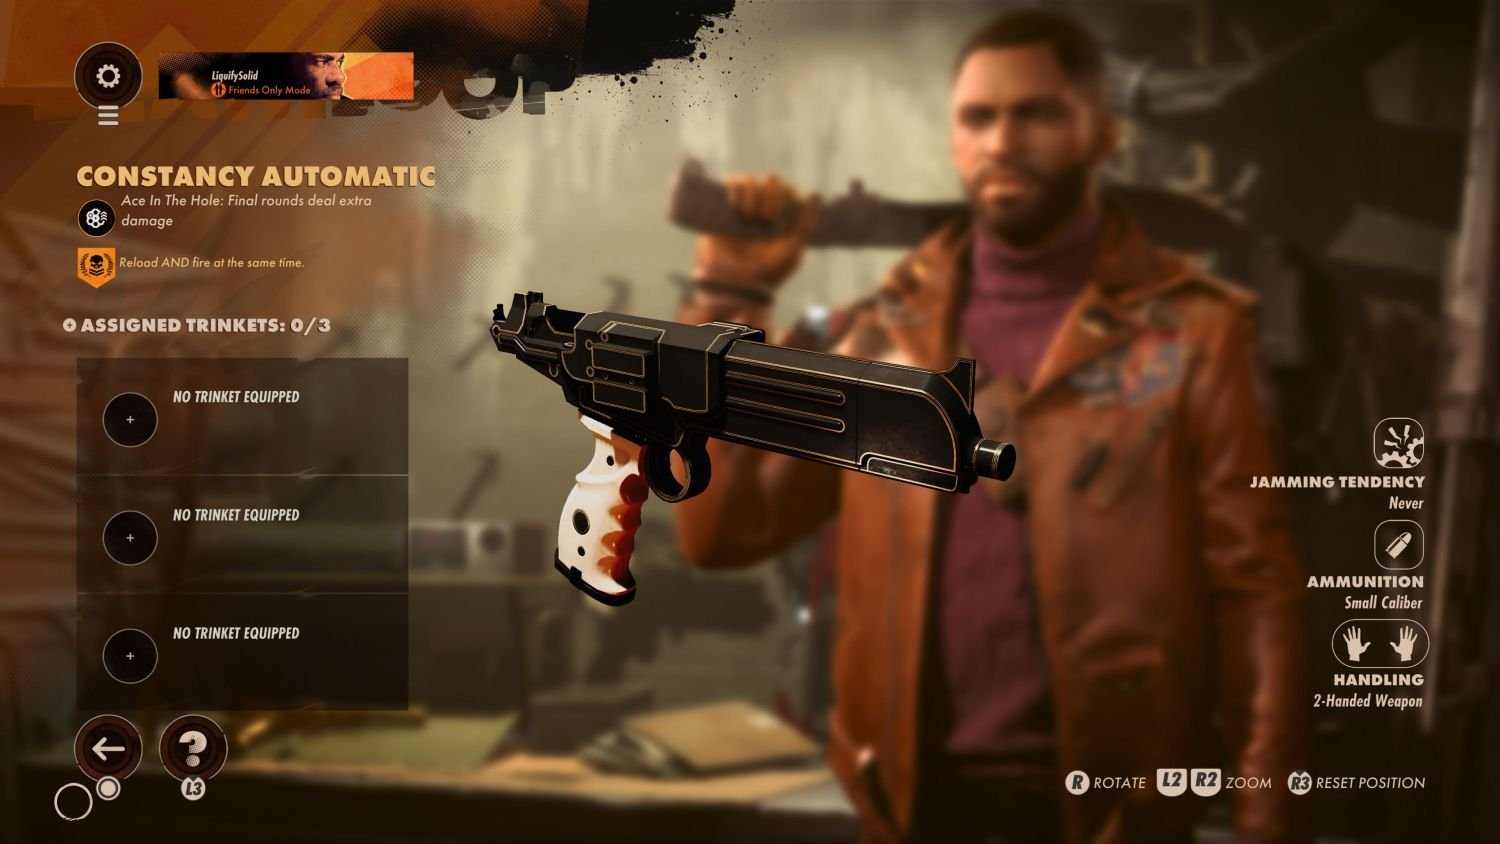 The Best Weapons And Slabs In Deathloop You Need To Know - The Constancy Automatic